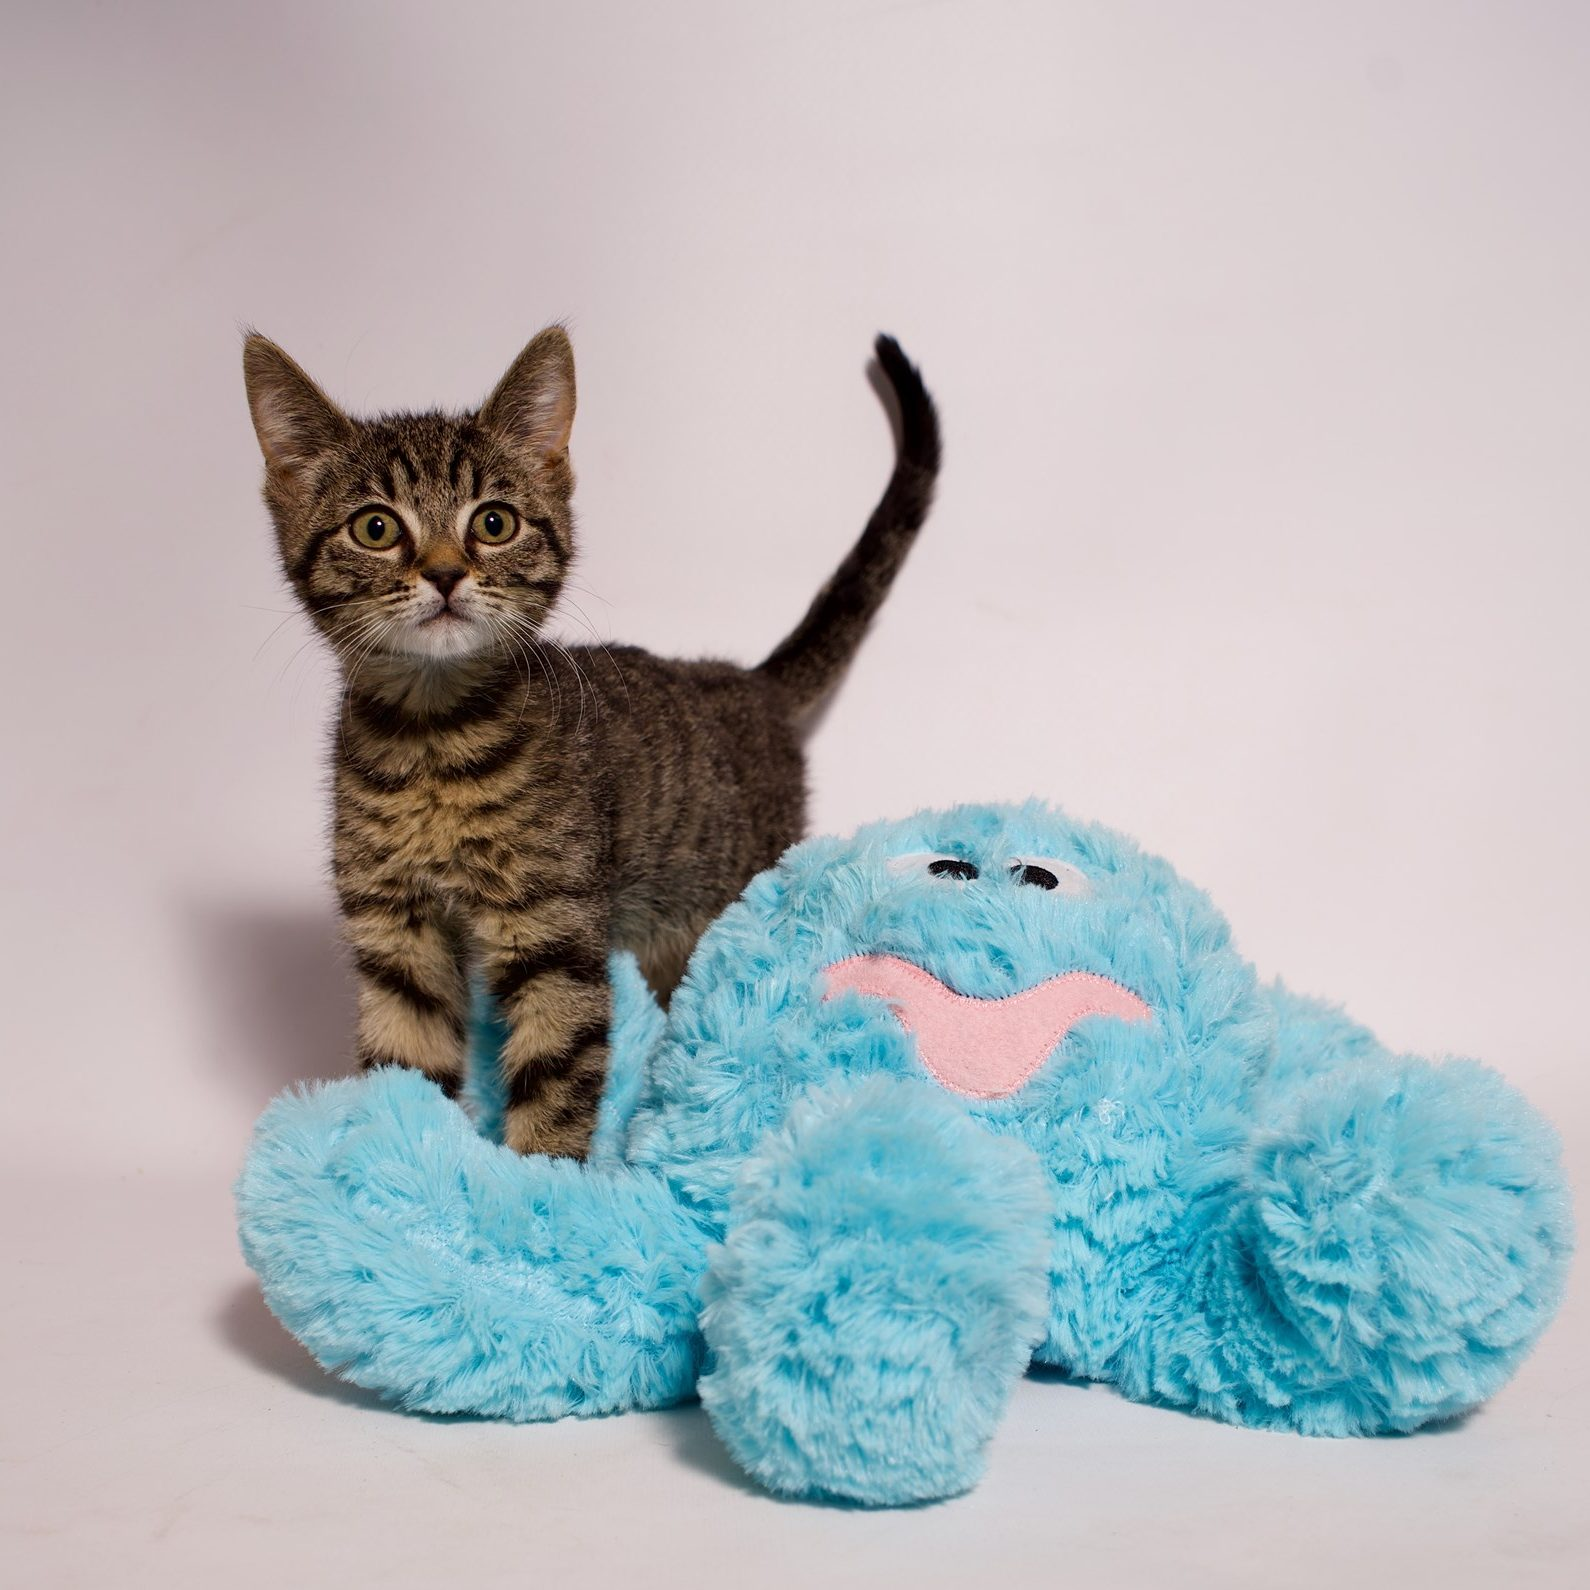 Adopt a pet in need with Foster Army Animal Rescue in Riverside, CA